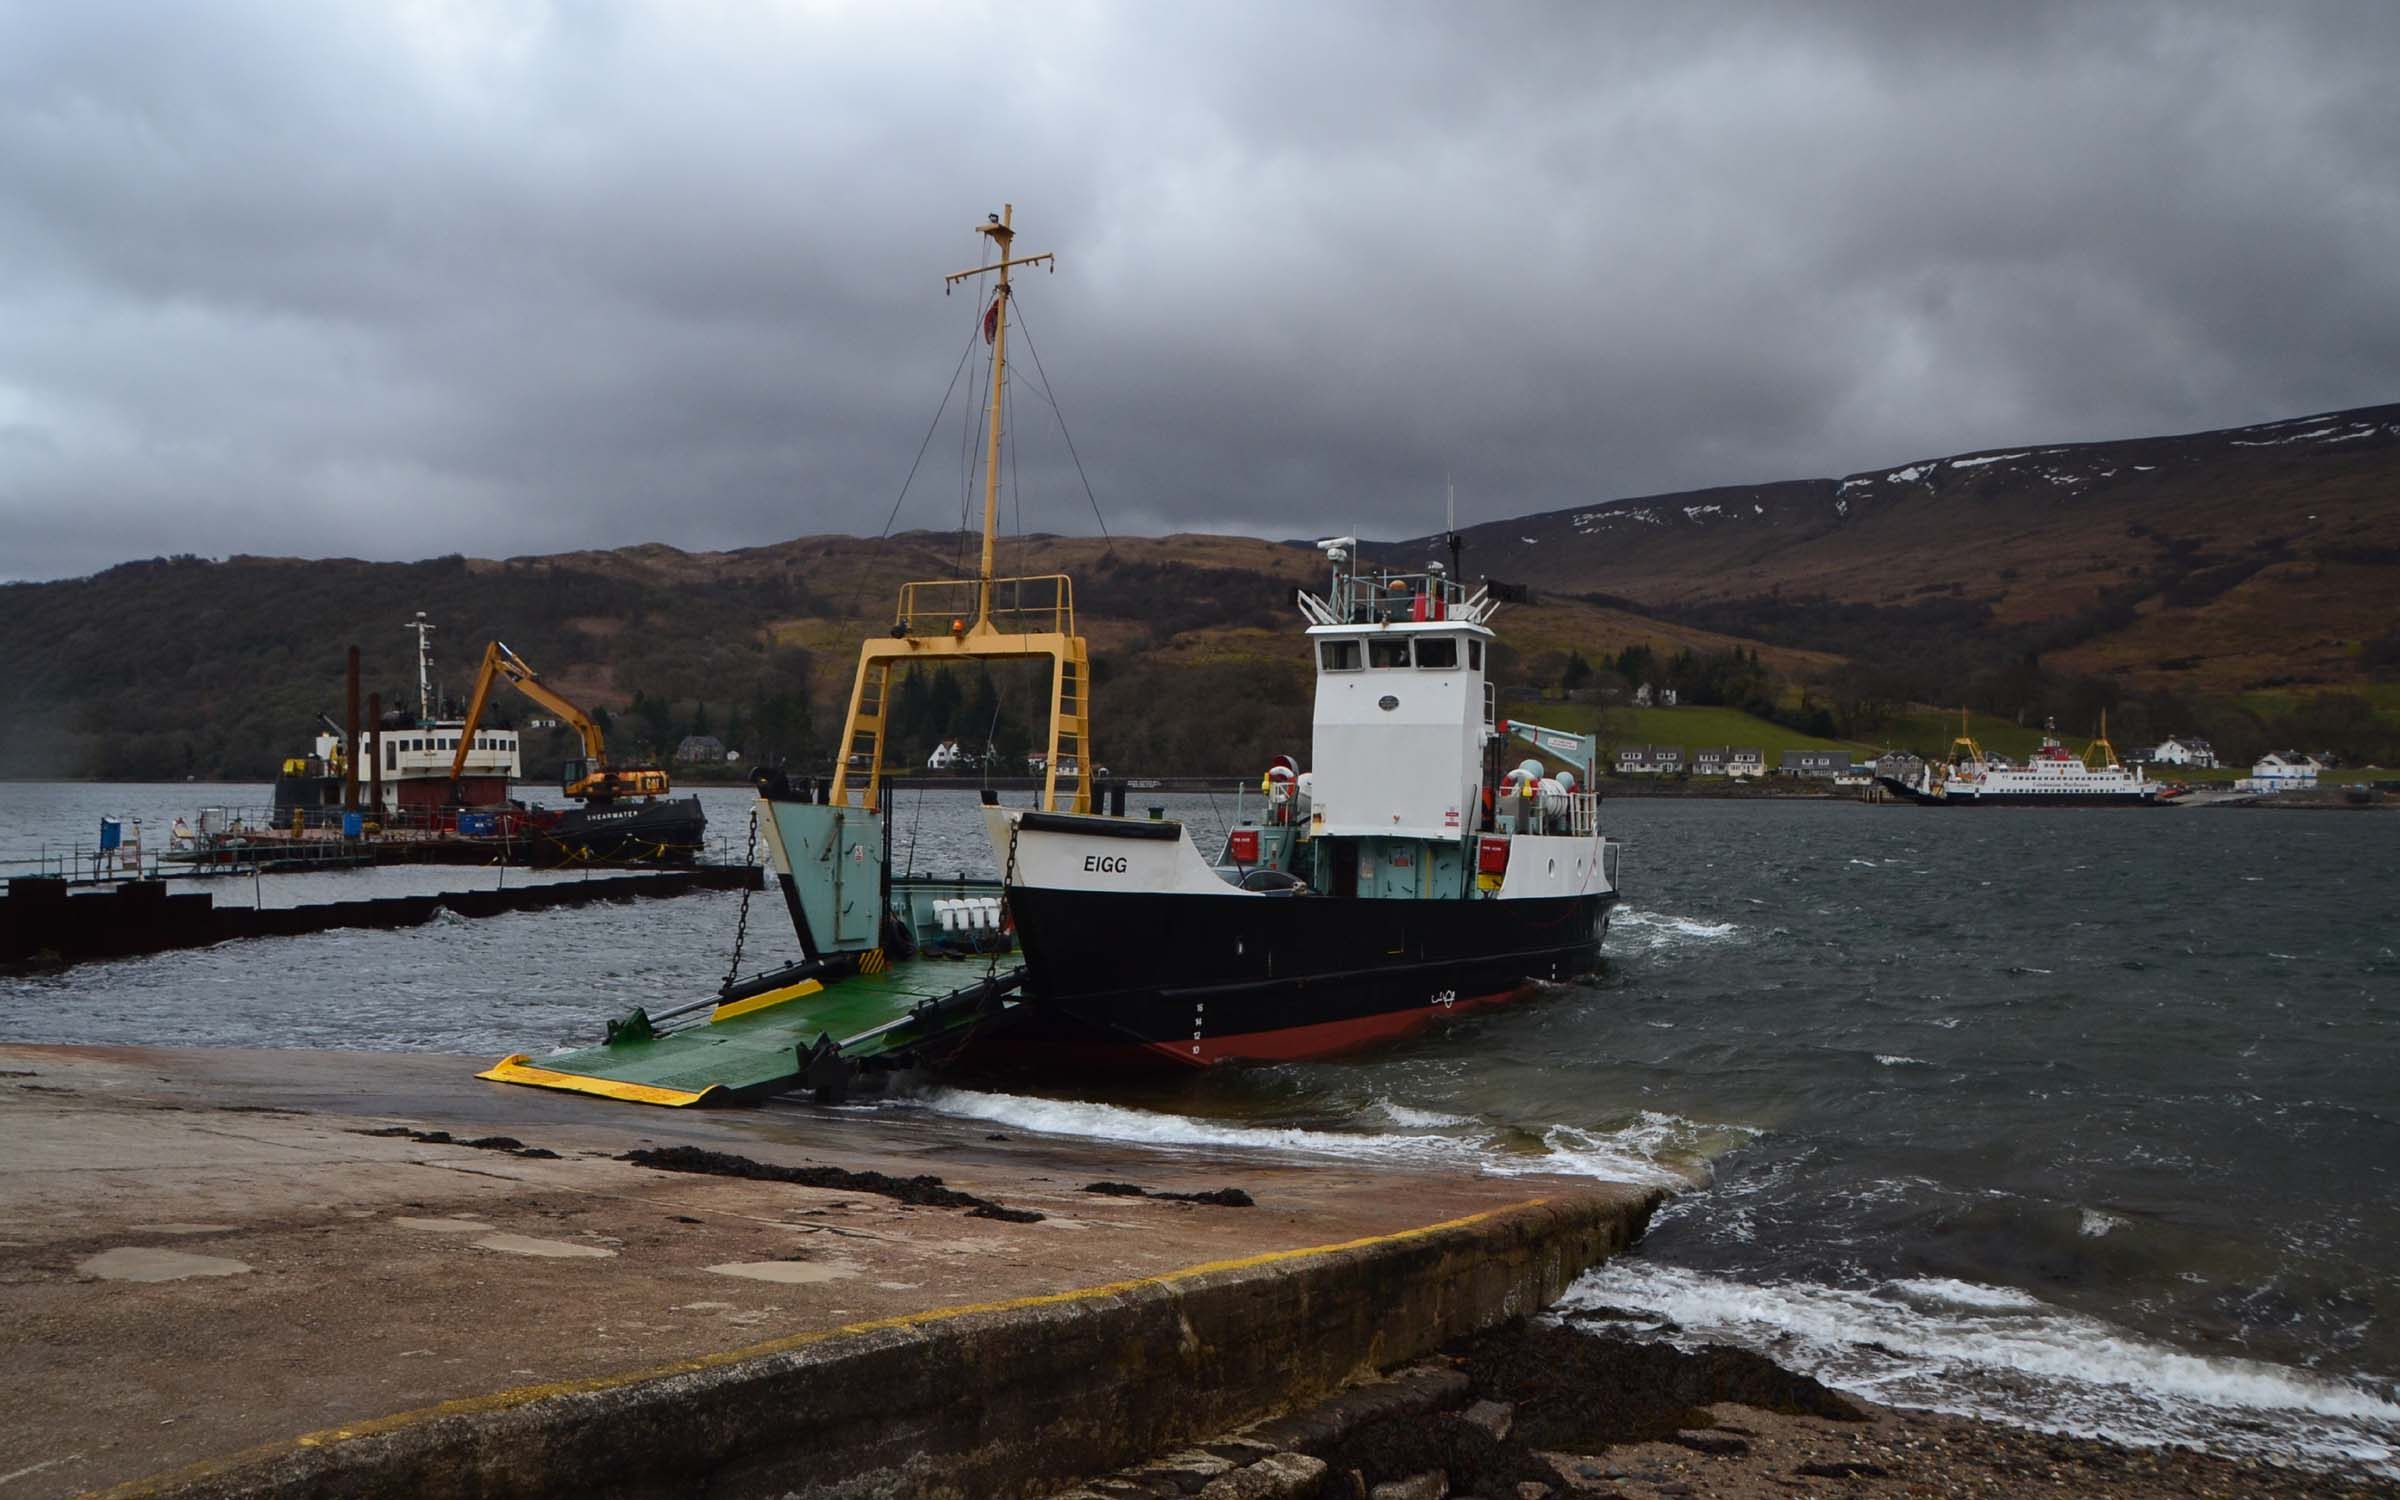 Eigg's last visit to Rhubodach prior to being sold (Ships of CalMac)